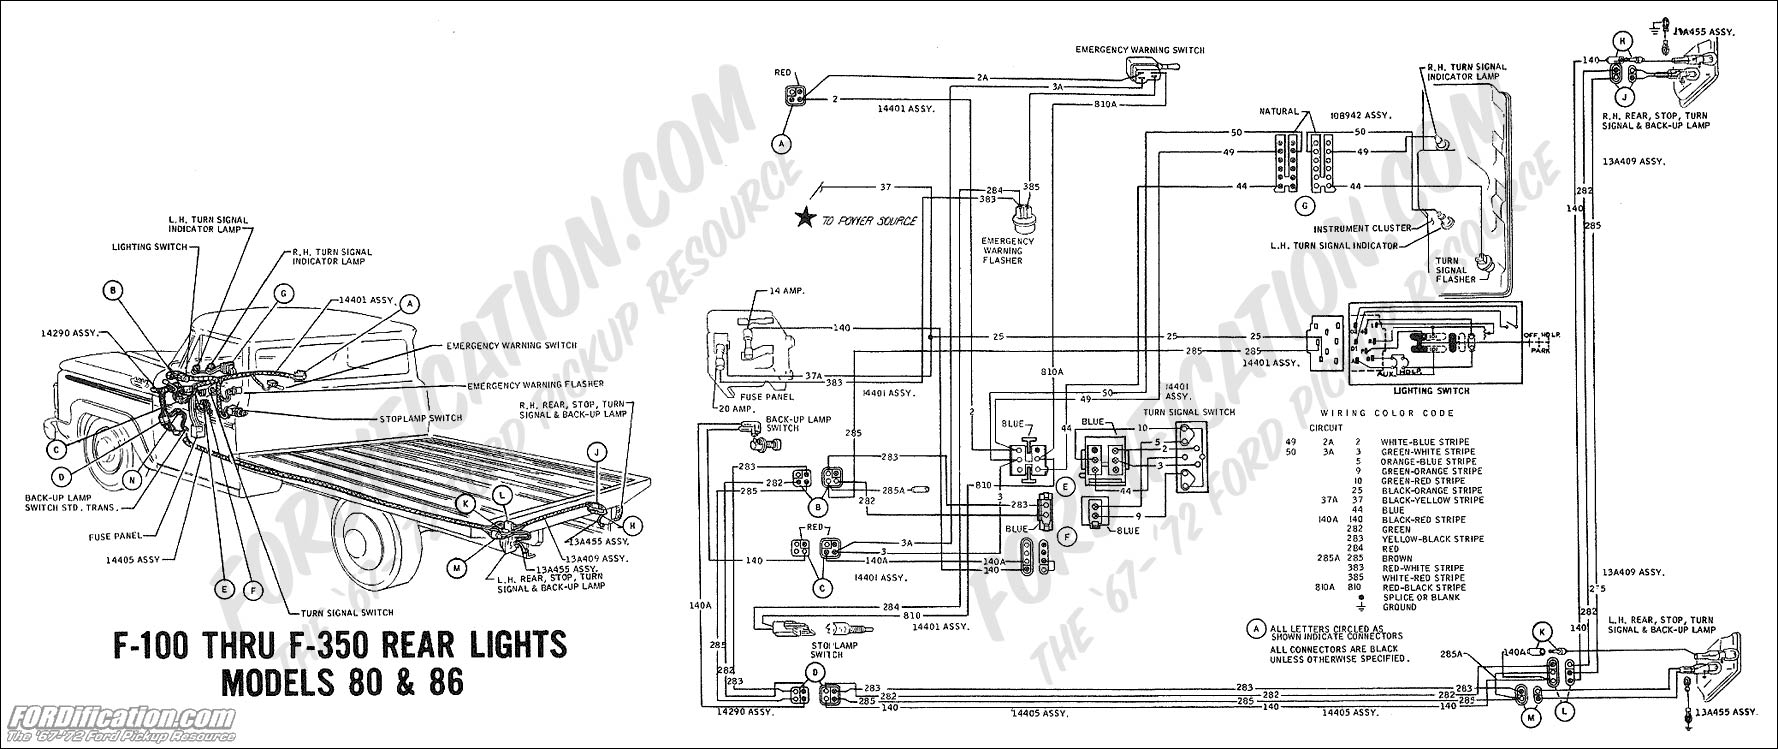 Maxresdefault as well Front With Pt Numbers likewise Flash A additionally Schematic Pre L Late Version as well Kenworth T Cummins Ism Isx Electrical Schematics Manual Pdf. on kenworth wiring schematics